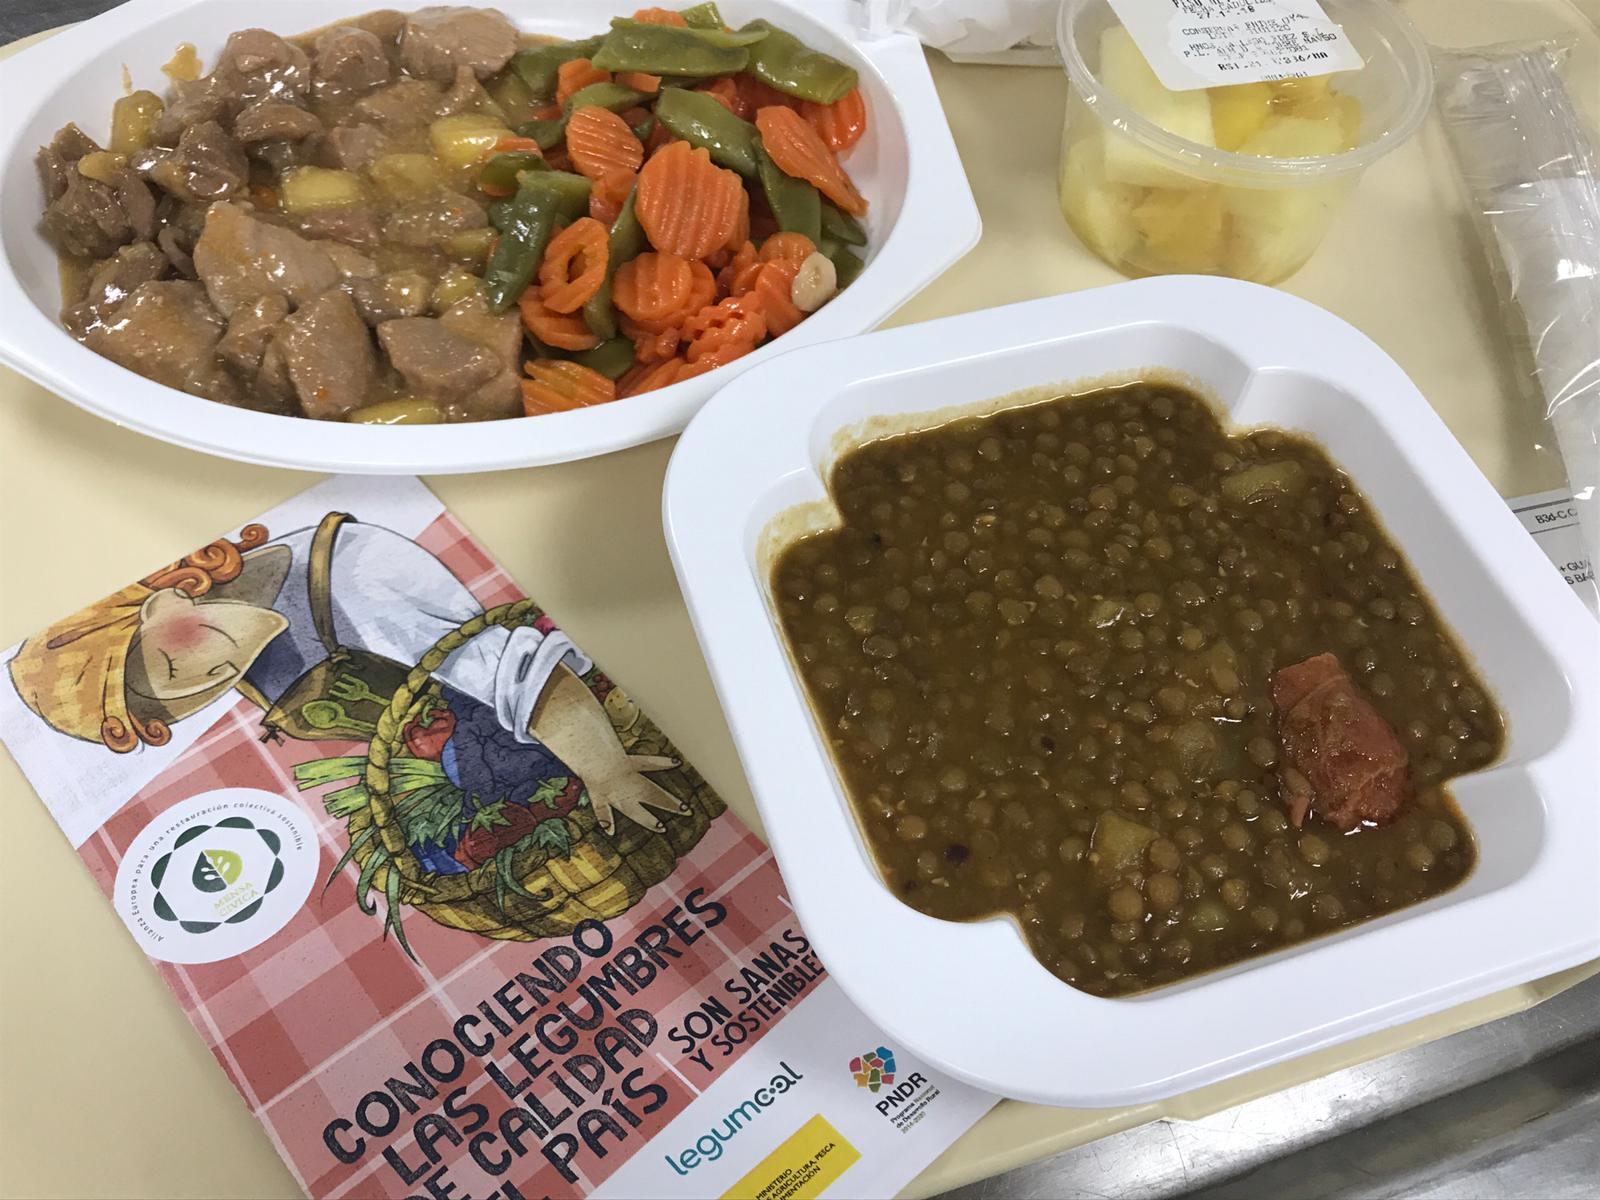 The Regional University Hospital of Malaga. Its pottage of lentils.